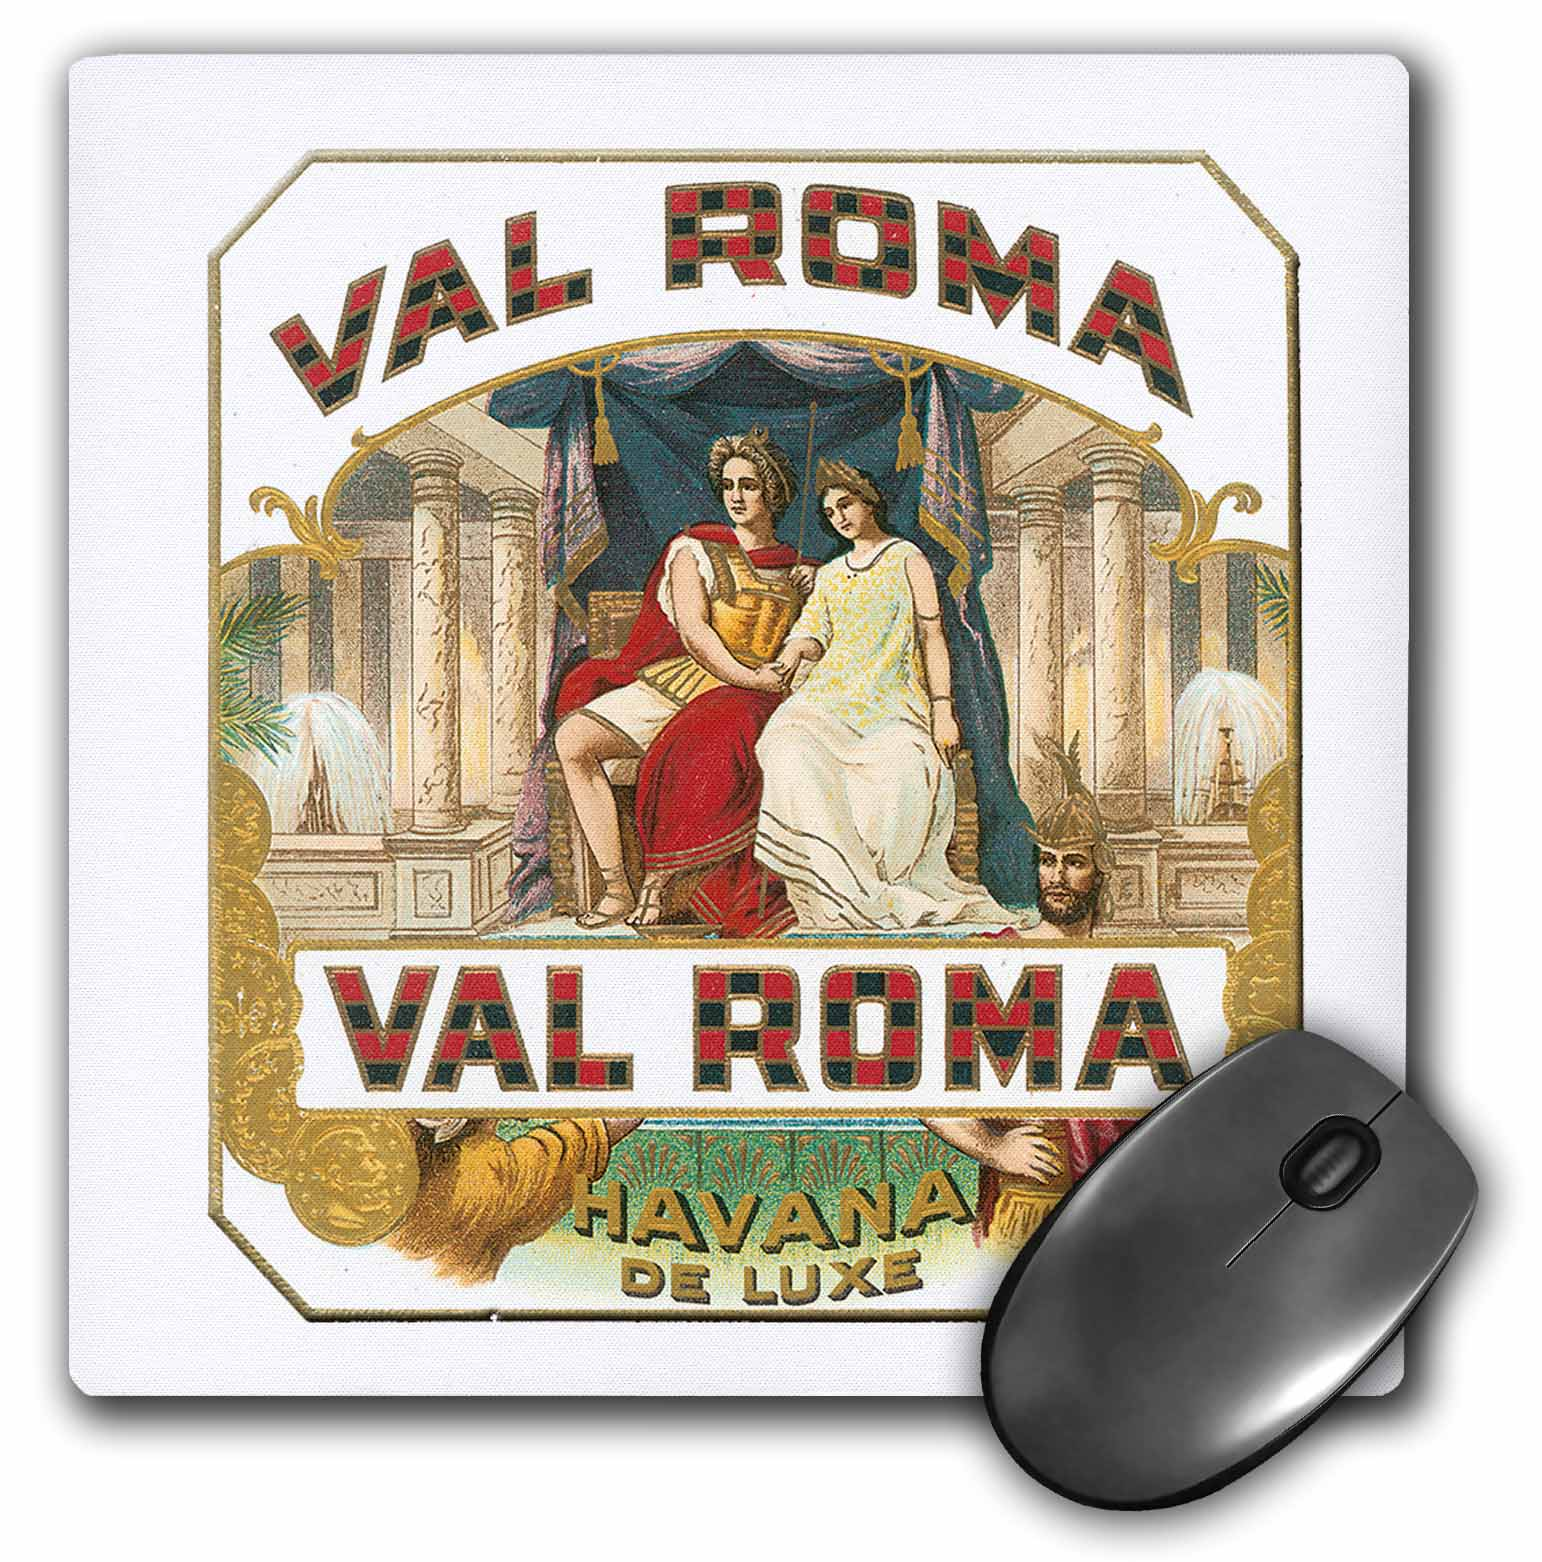 3dRose Val Roma Havana De Luxe Vintage Cuban Cigar Label Reproduction, Mouse Pad, 8 by 8 inches